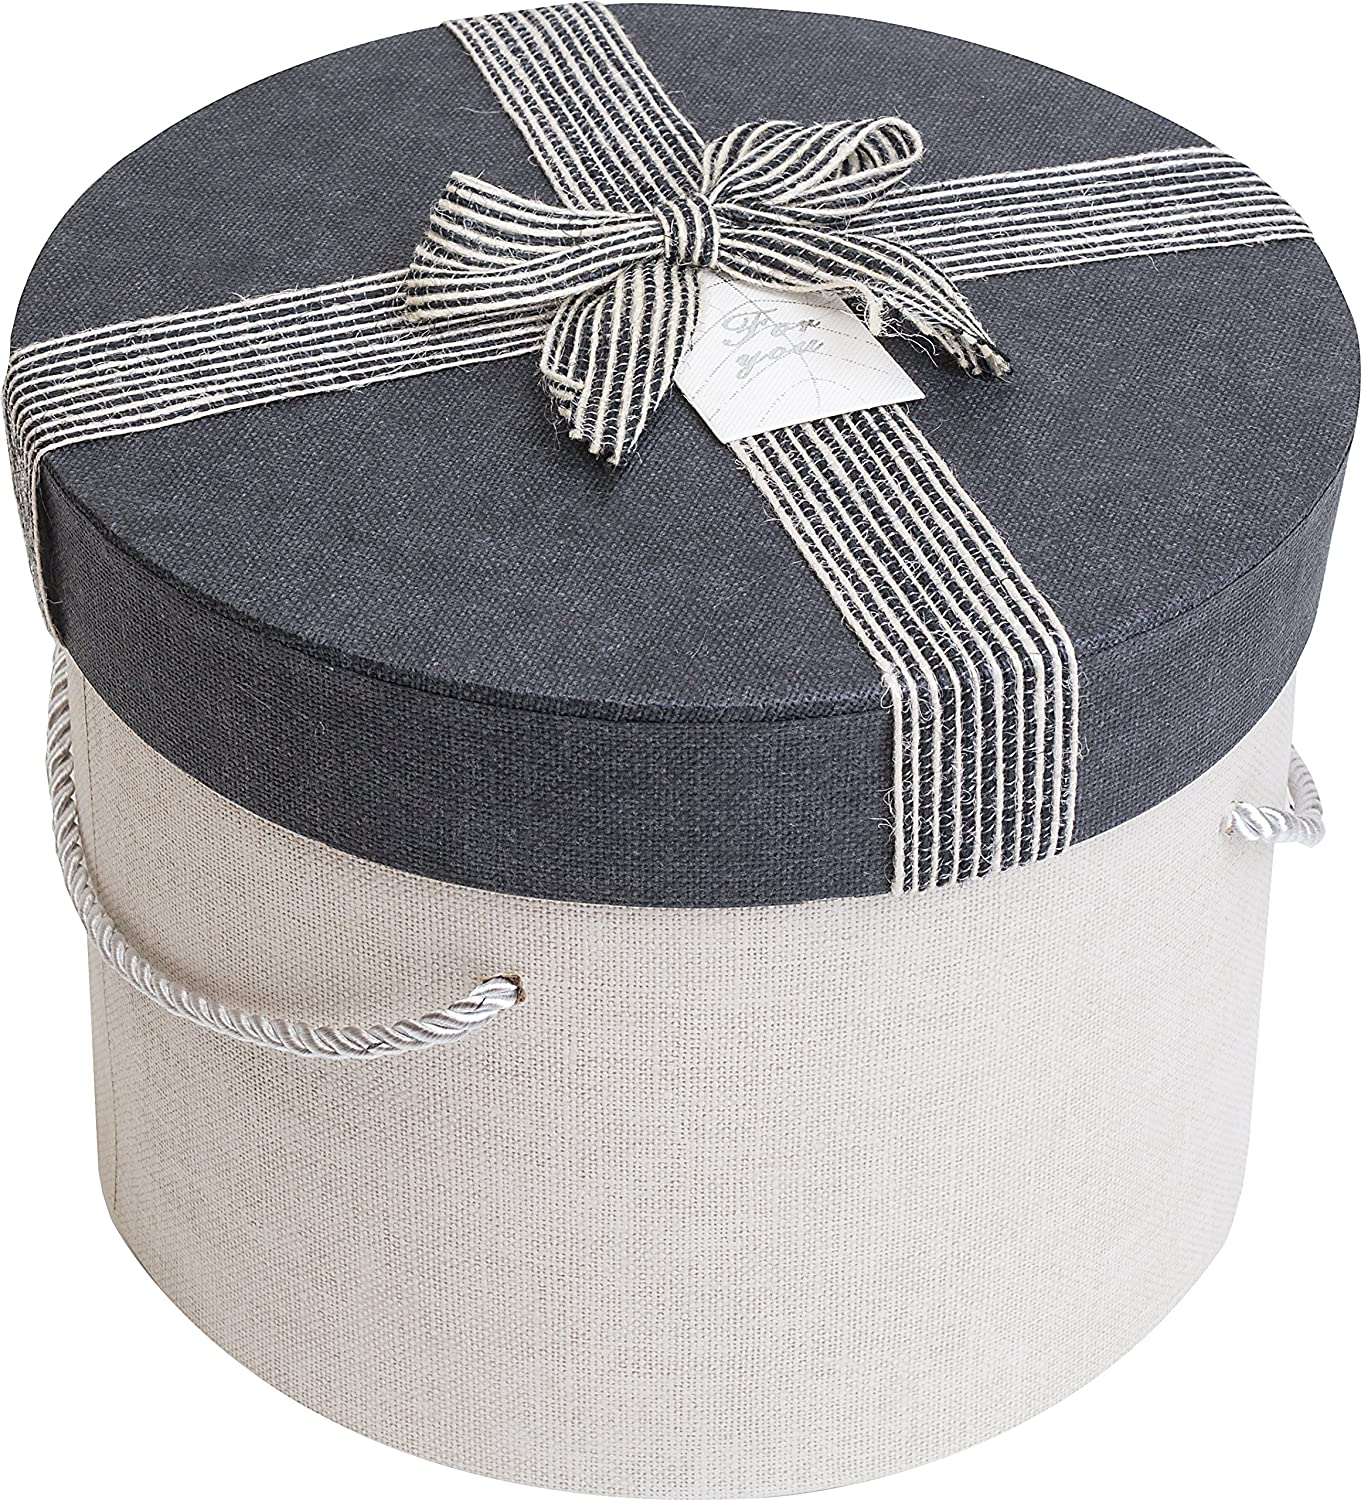 Emartbuy Set of 3 Rigid Luxury Cylindrical Presentation Gift Box Chocolate Brown Interior and Pink Jute Decorative Bow Ribbon Pink Box with Beige Lid